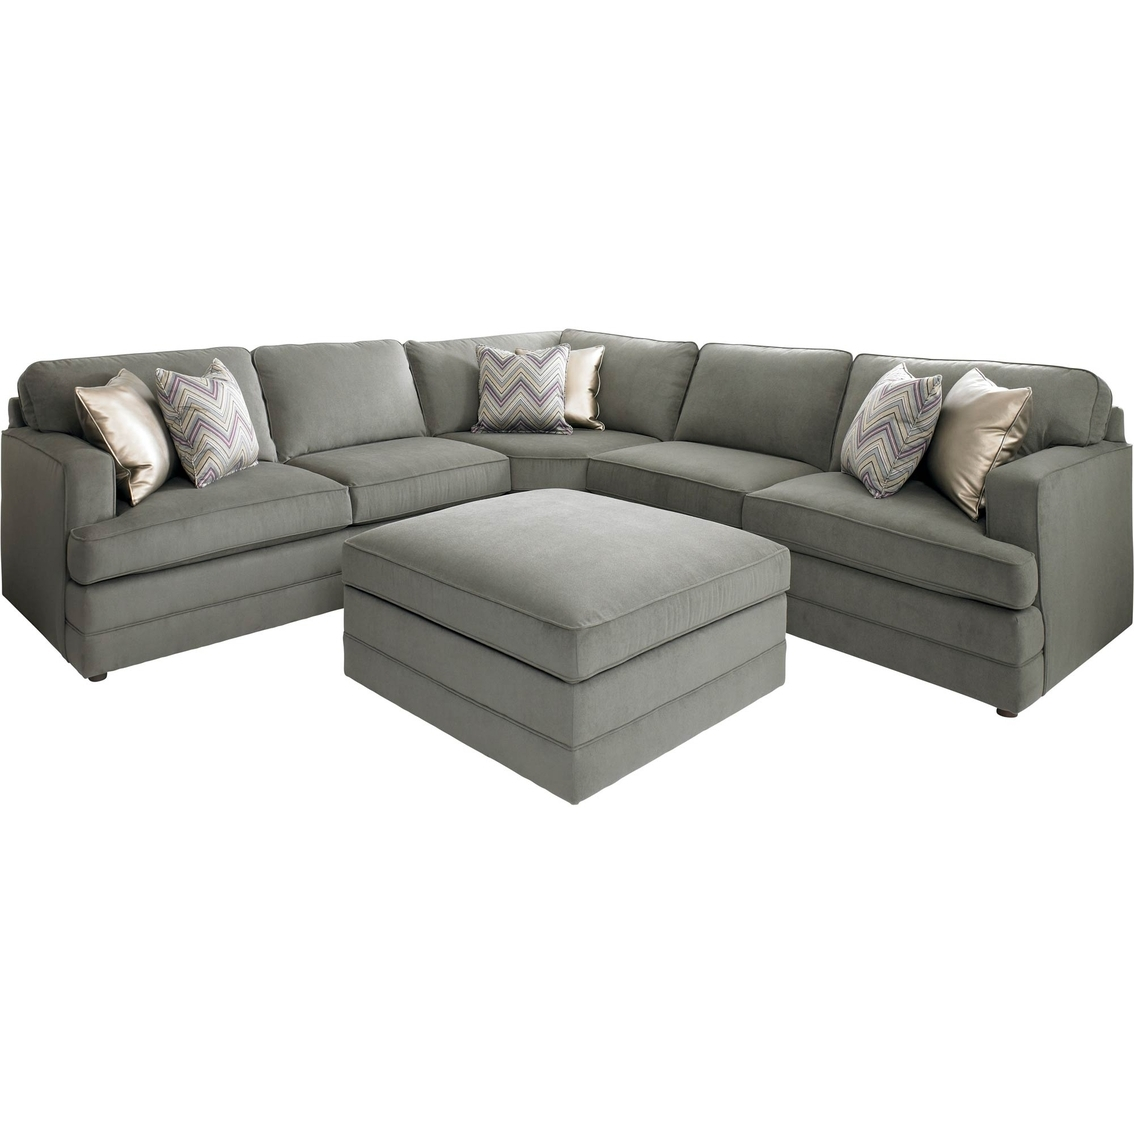 Bassett Dalton L Shaped Sectional Sofa With Ottoman Base House Within Bassett Sectional Sofa (#1 of 12)